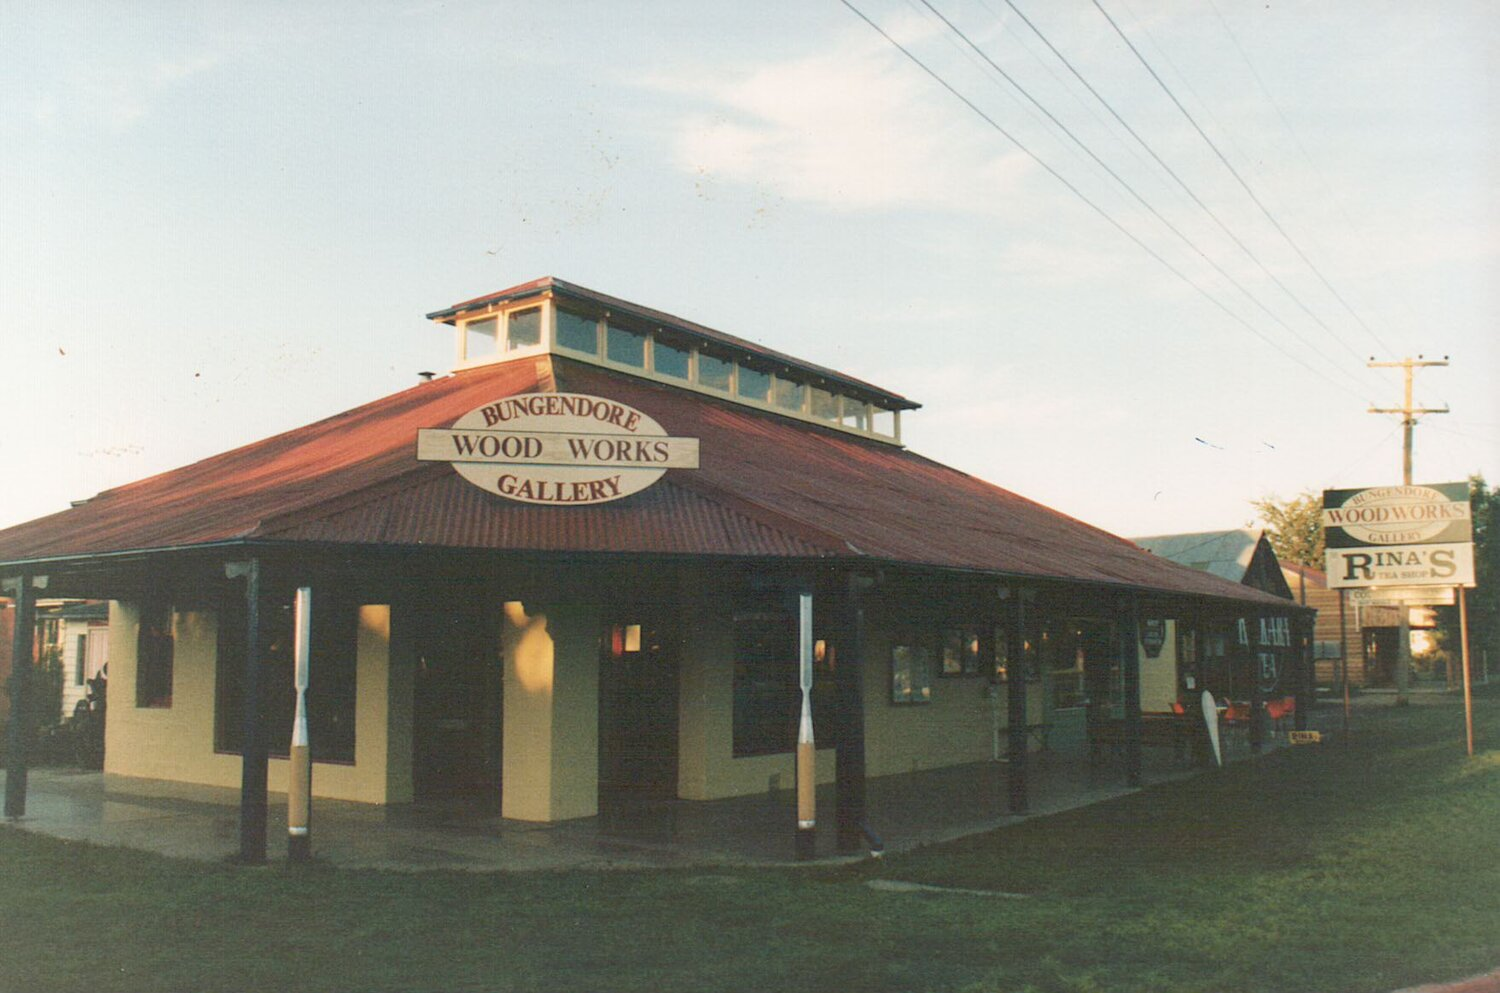 Original Gallery open in 1983.